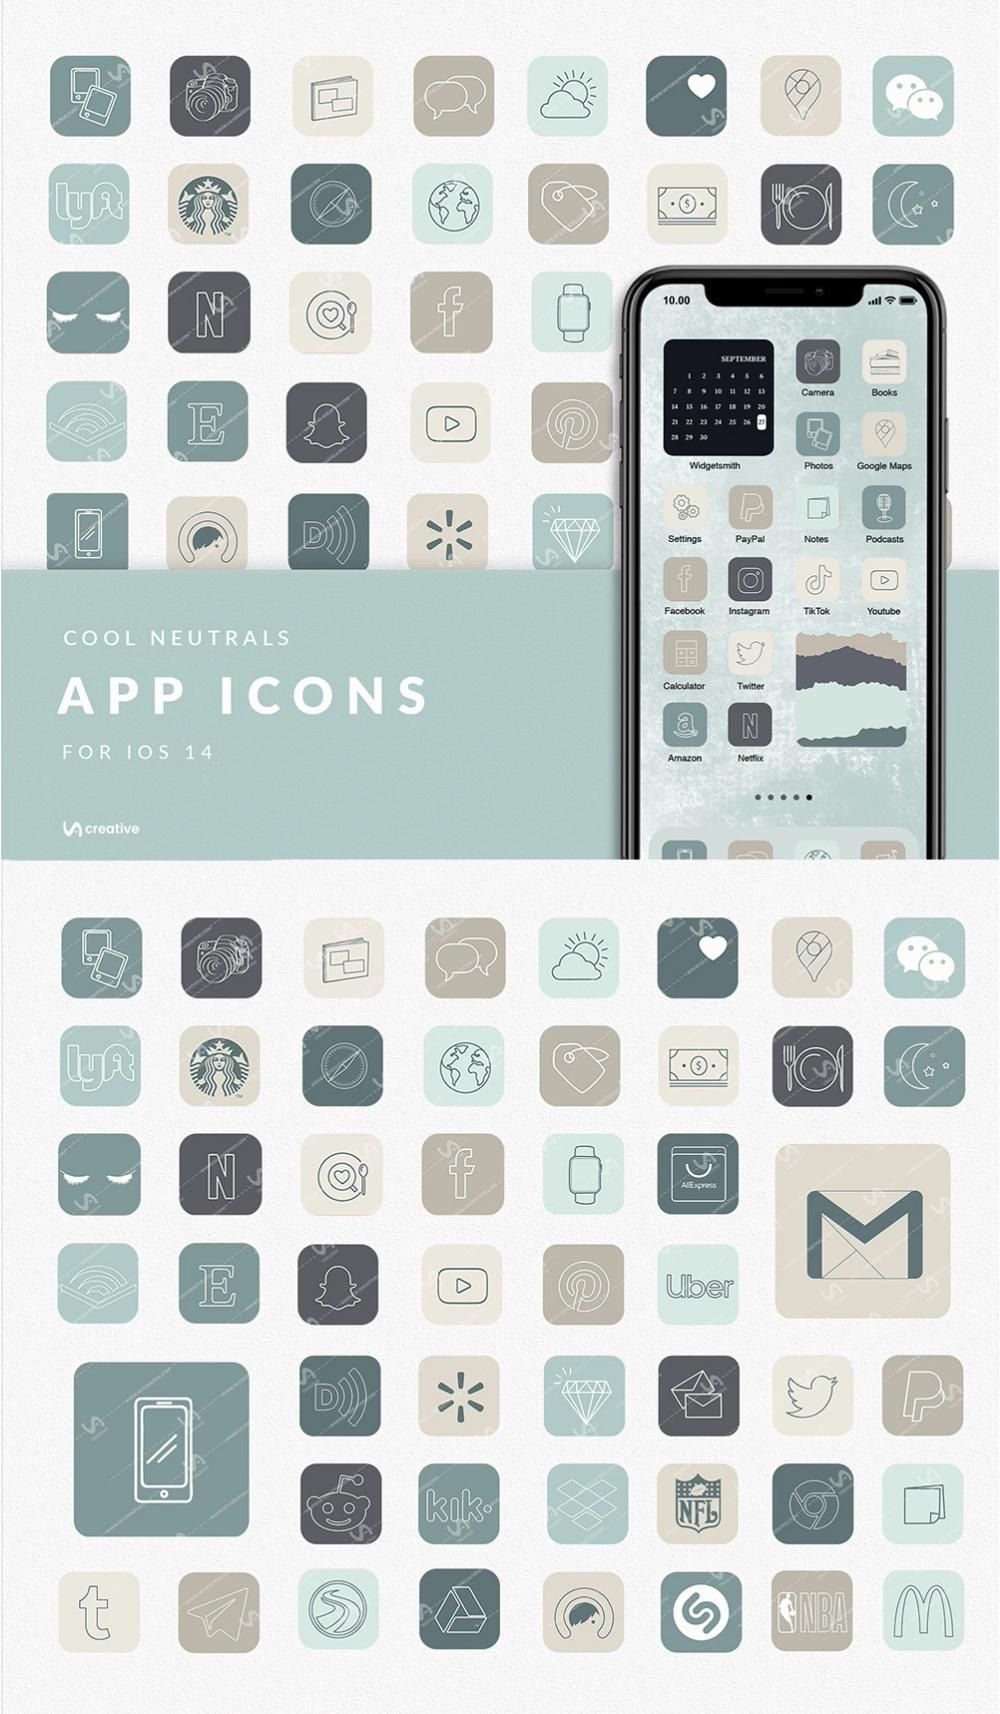 APP ICONS Cool Neutral Aesthetic 127 icons ios14,